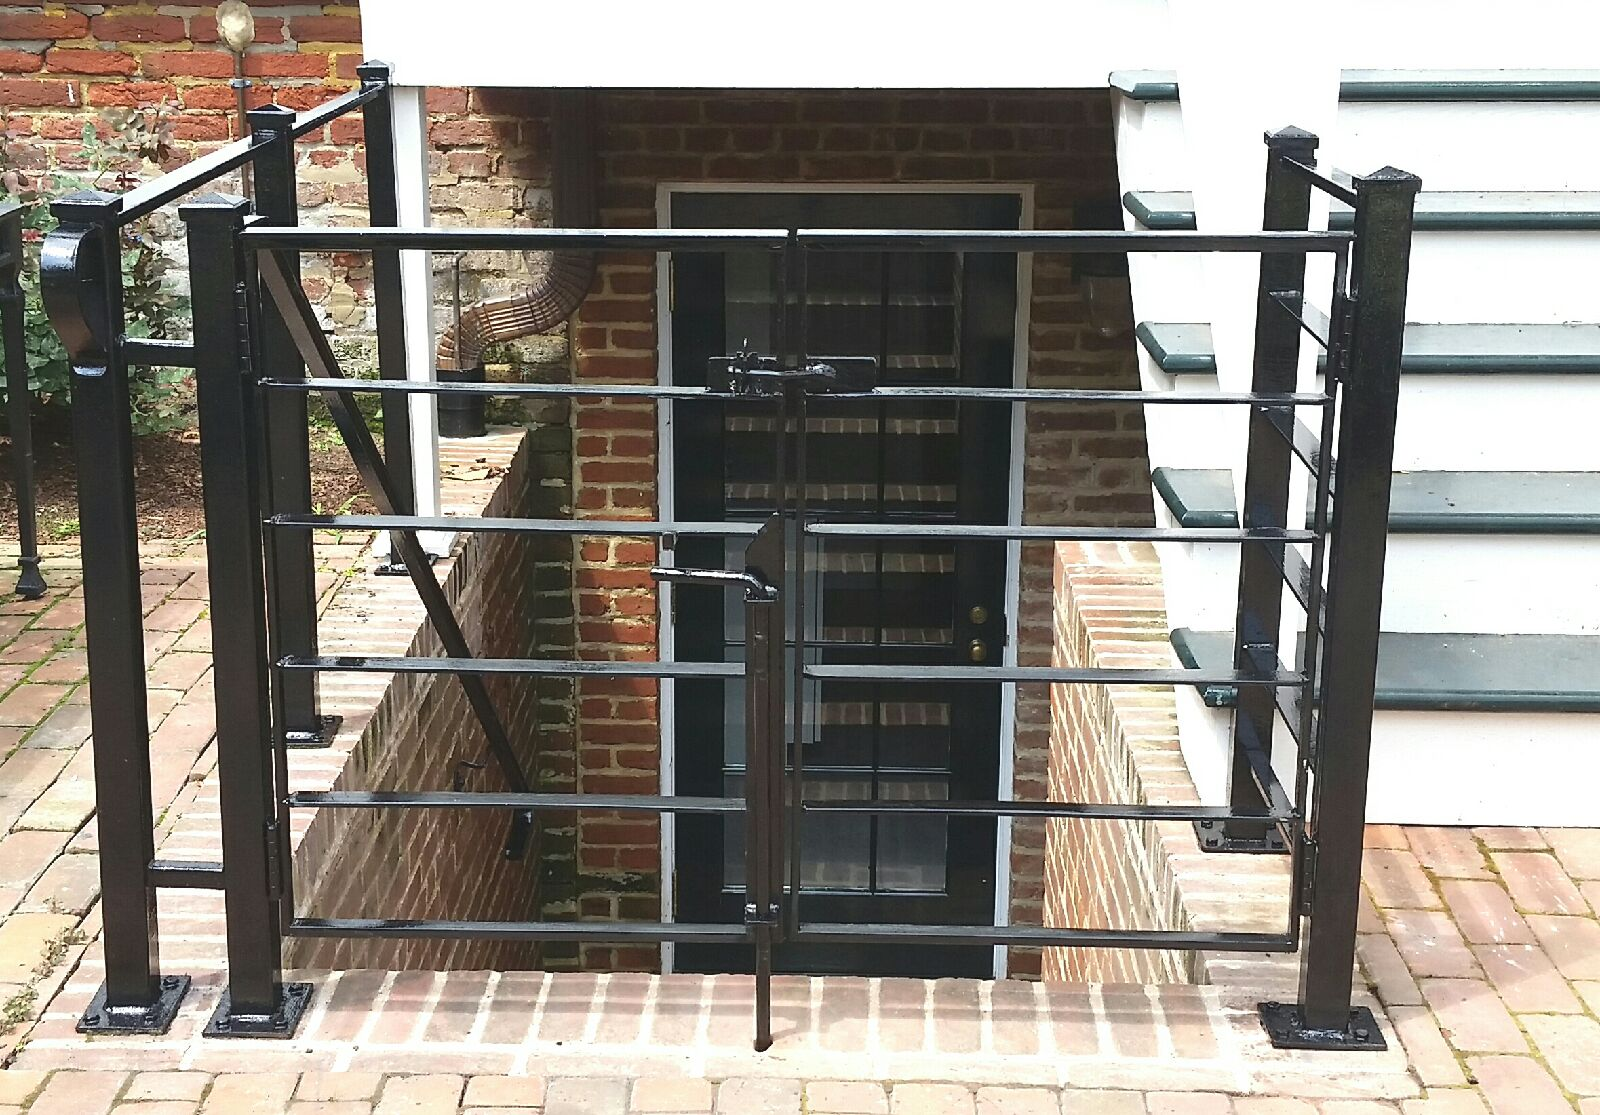 Gate with horizontal bars